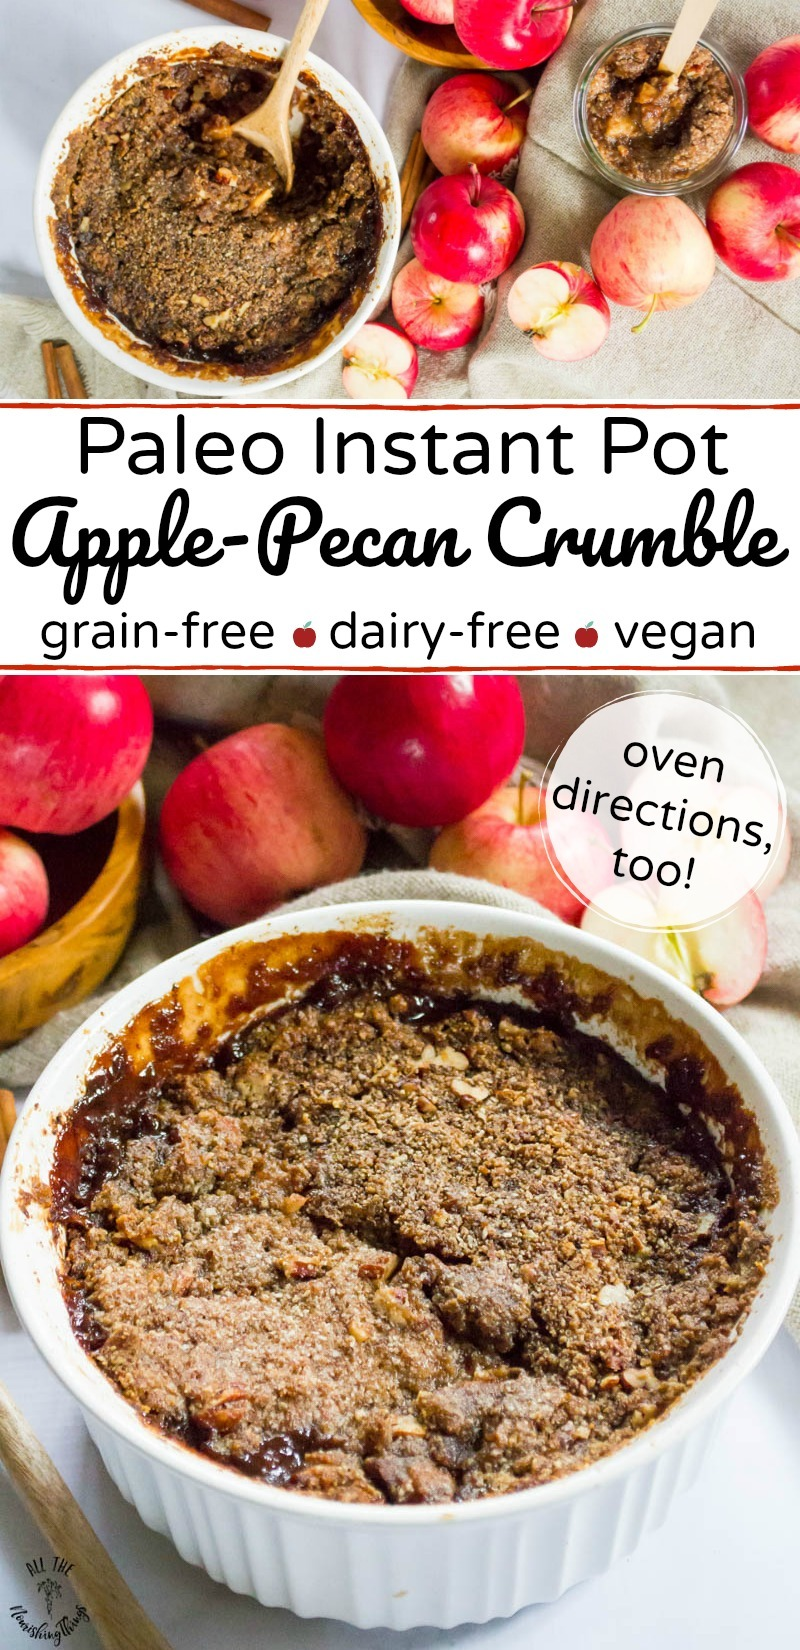 collage of 2 images of paleo instant pot apple pecan crumble with text overlay between the images